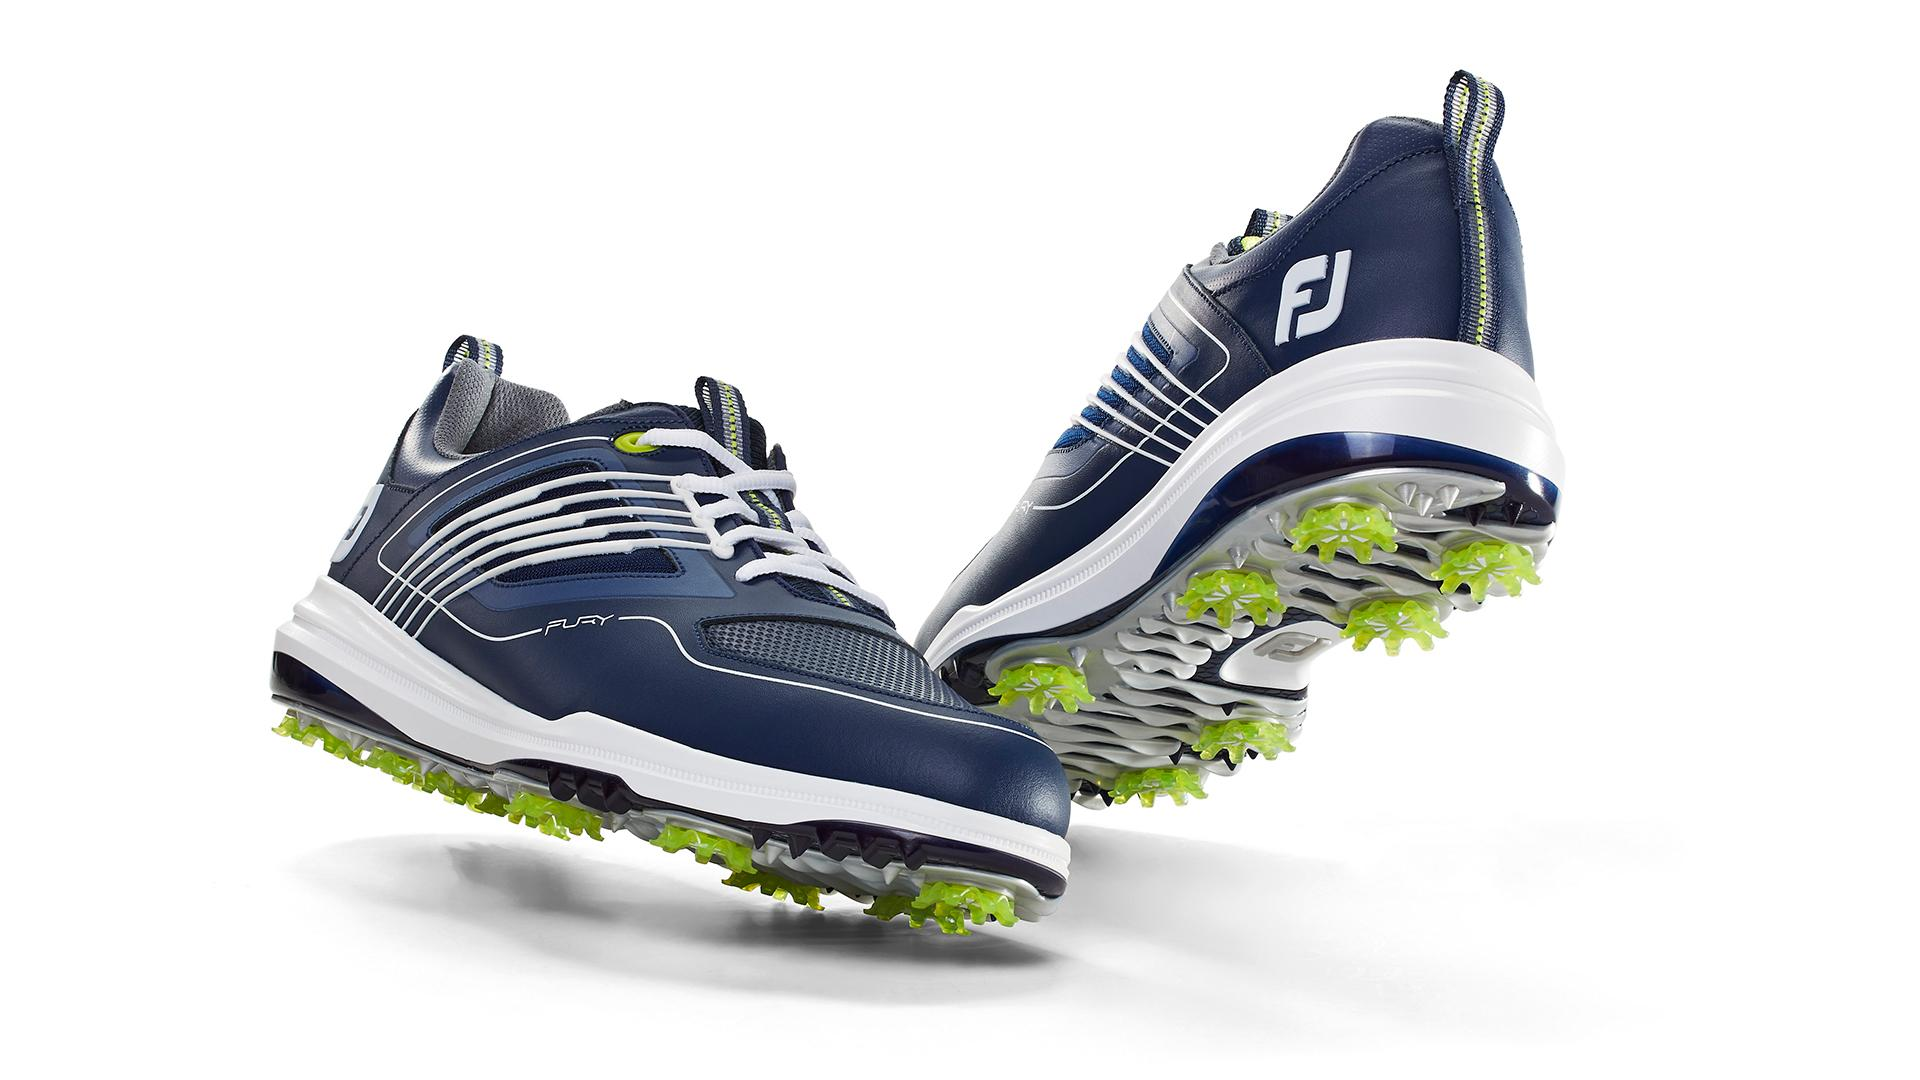 Best Golf Shoes: FootJoy